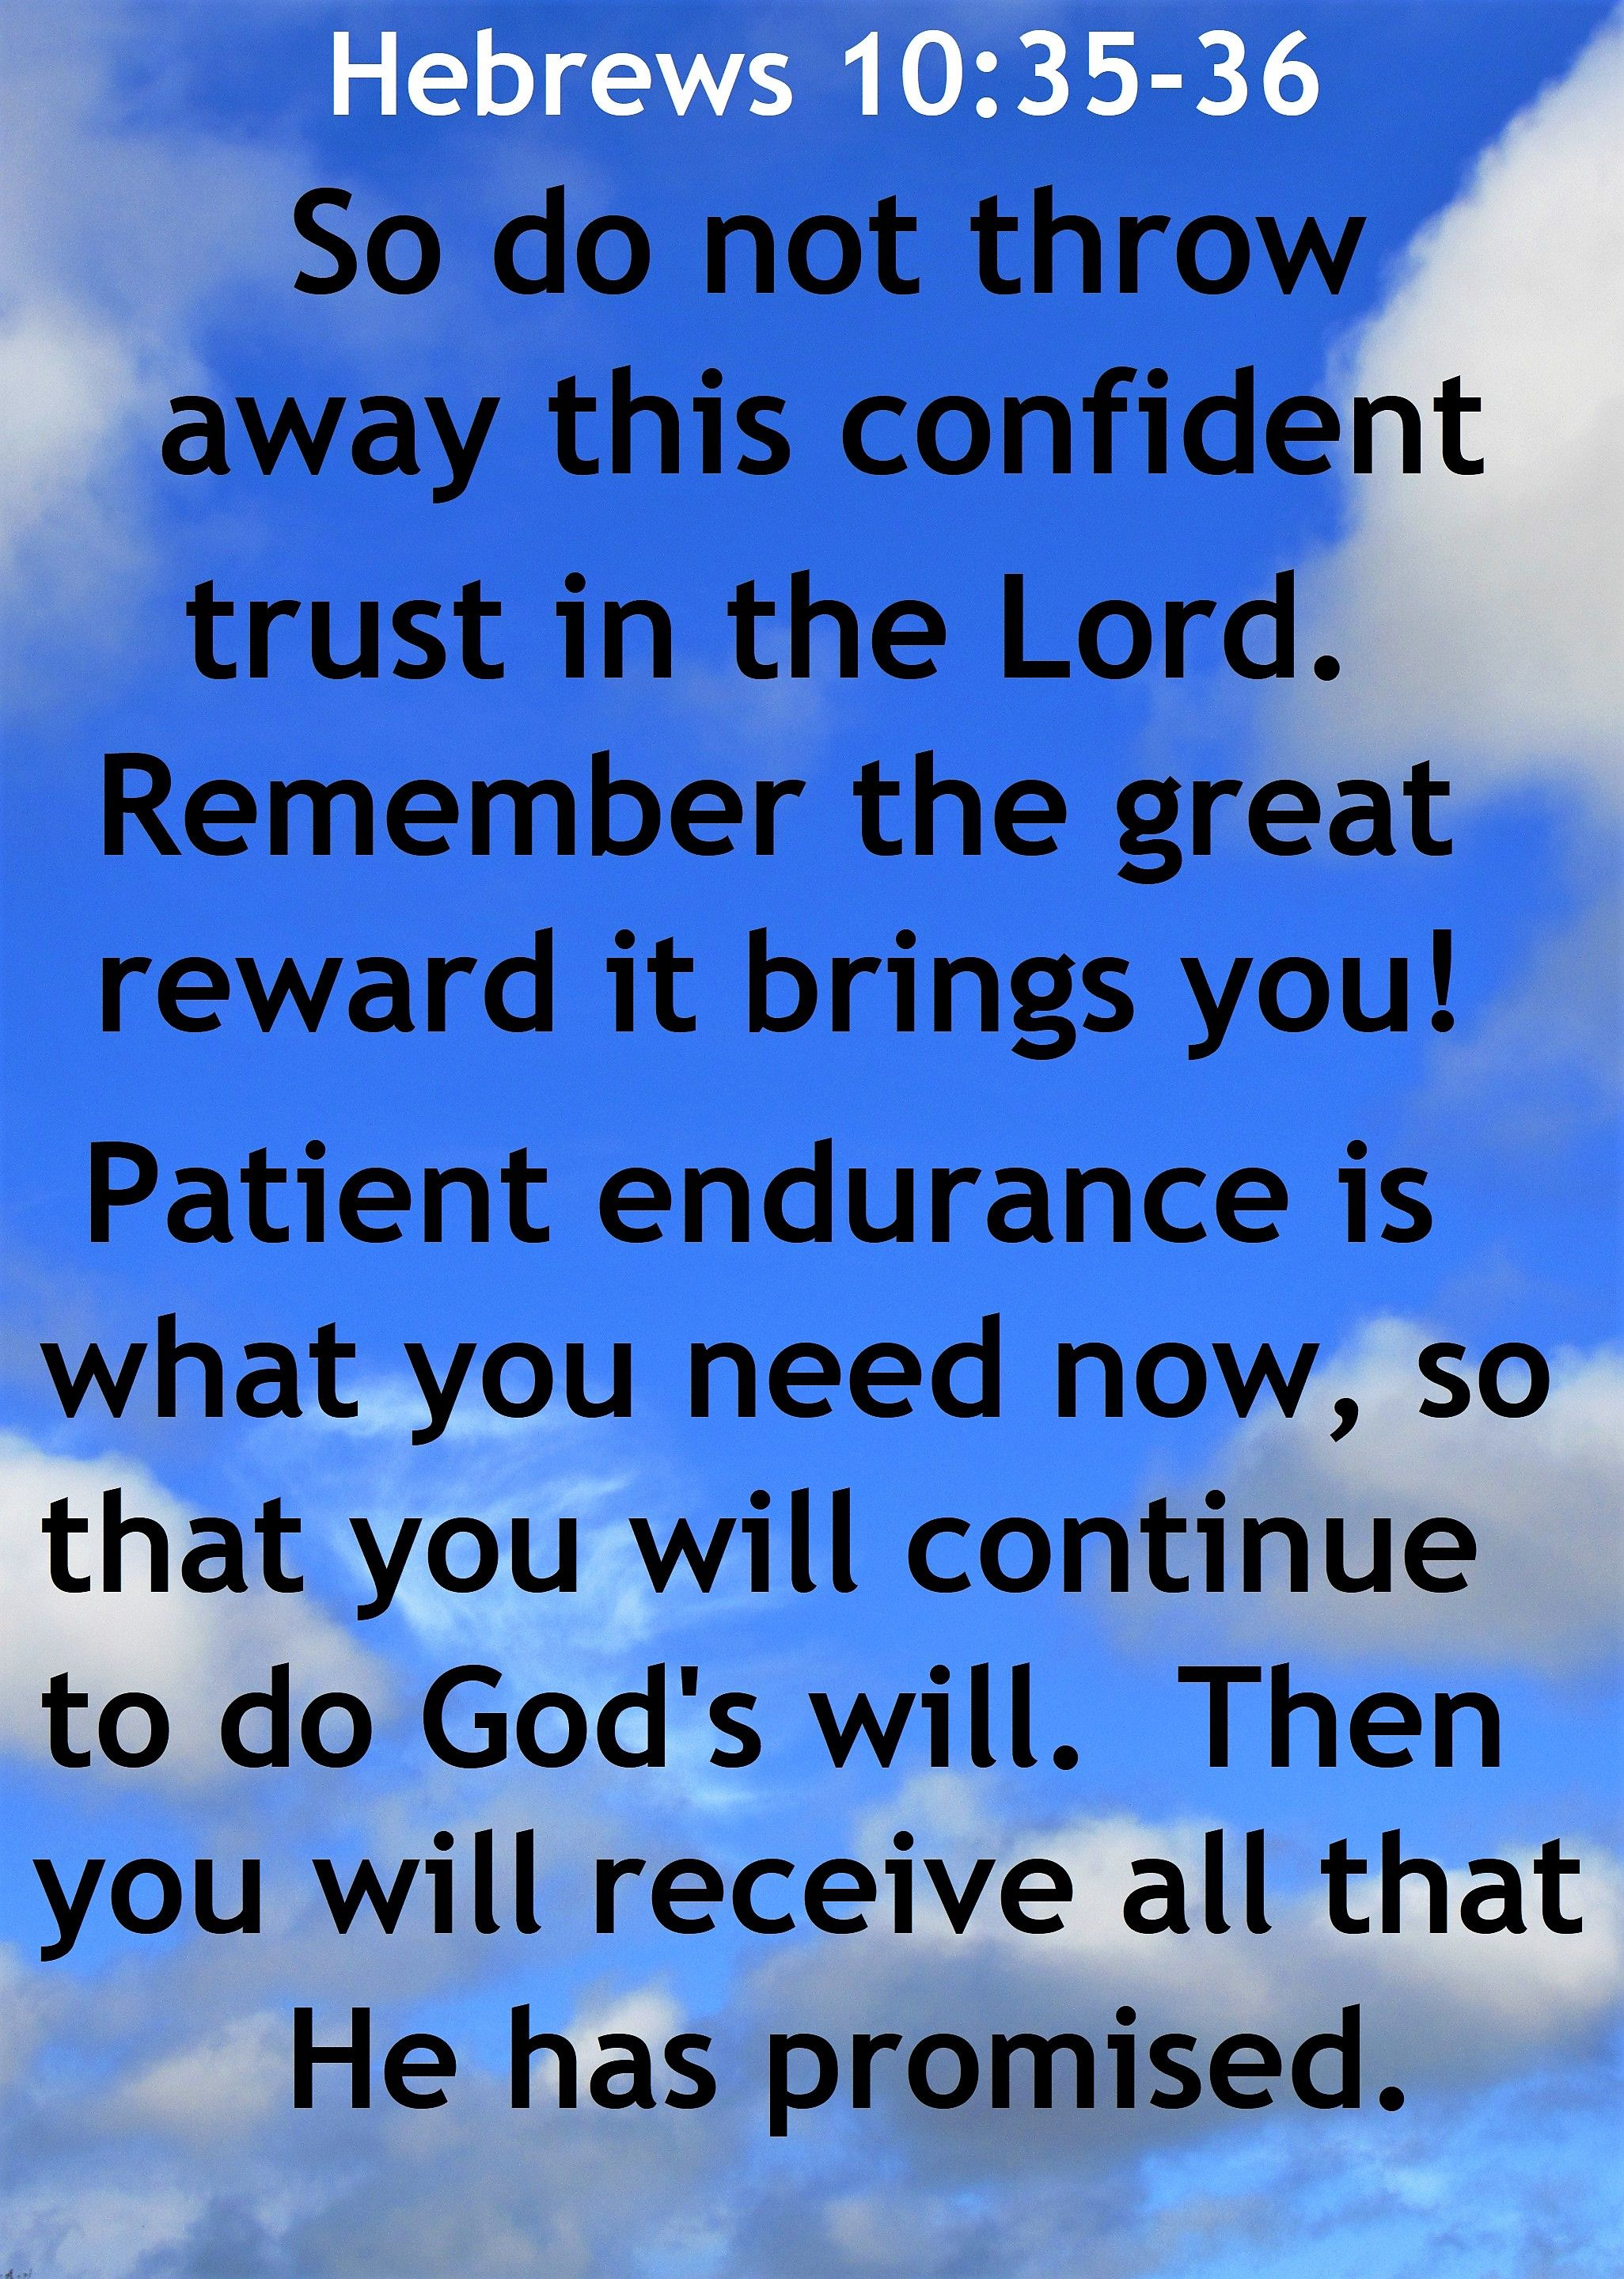 hebrews 10:35-36 nlt: patient endurance is what you need now, | jw